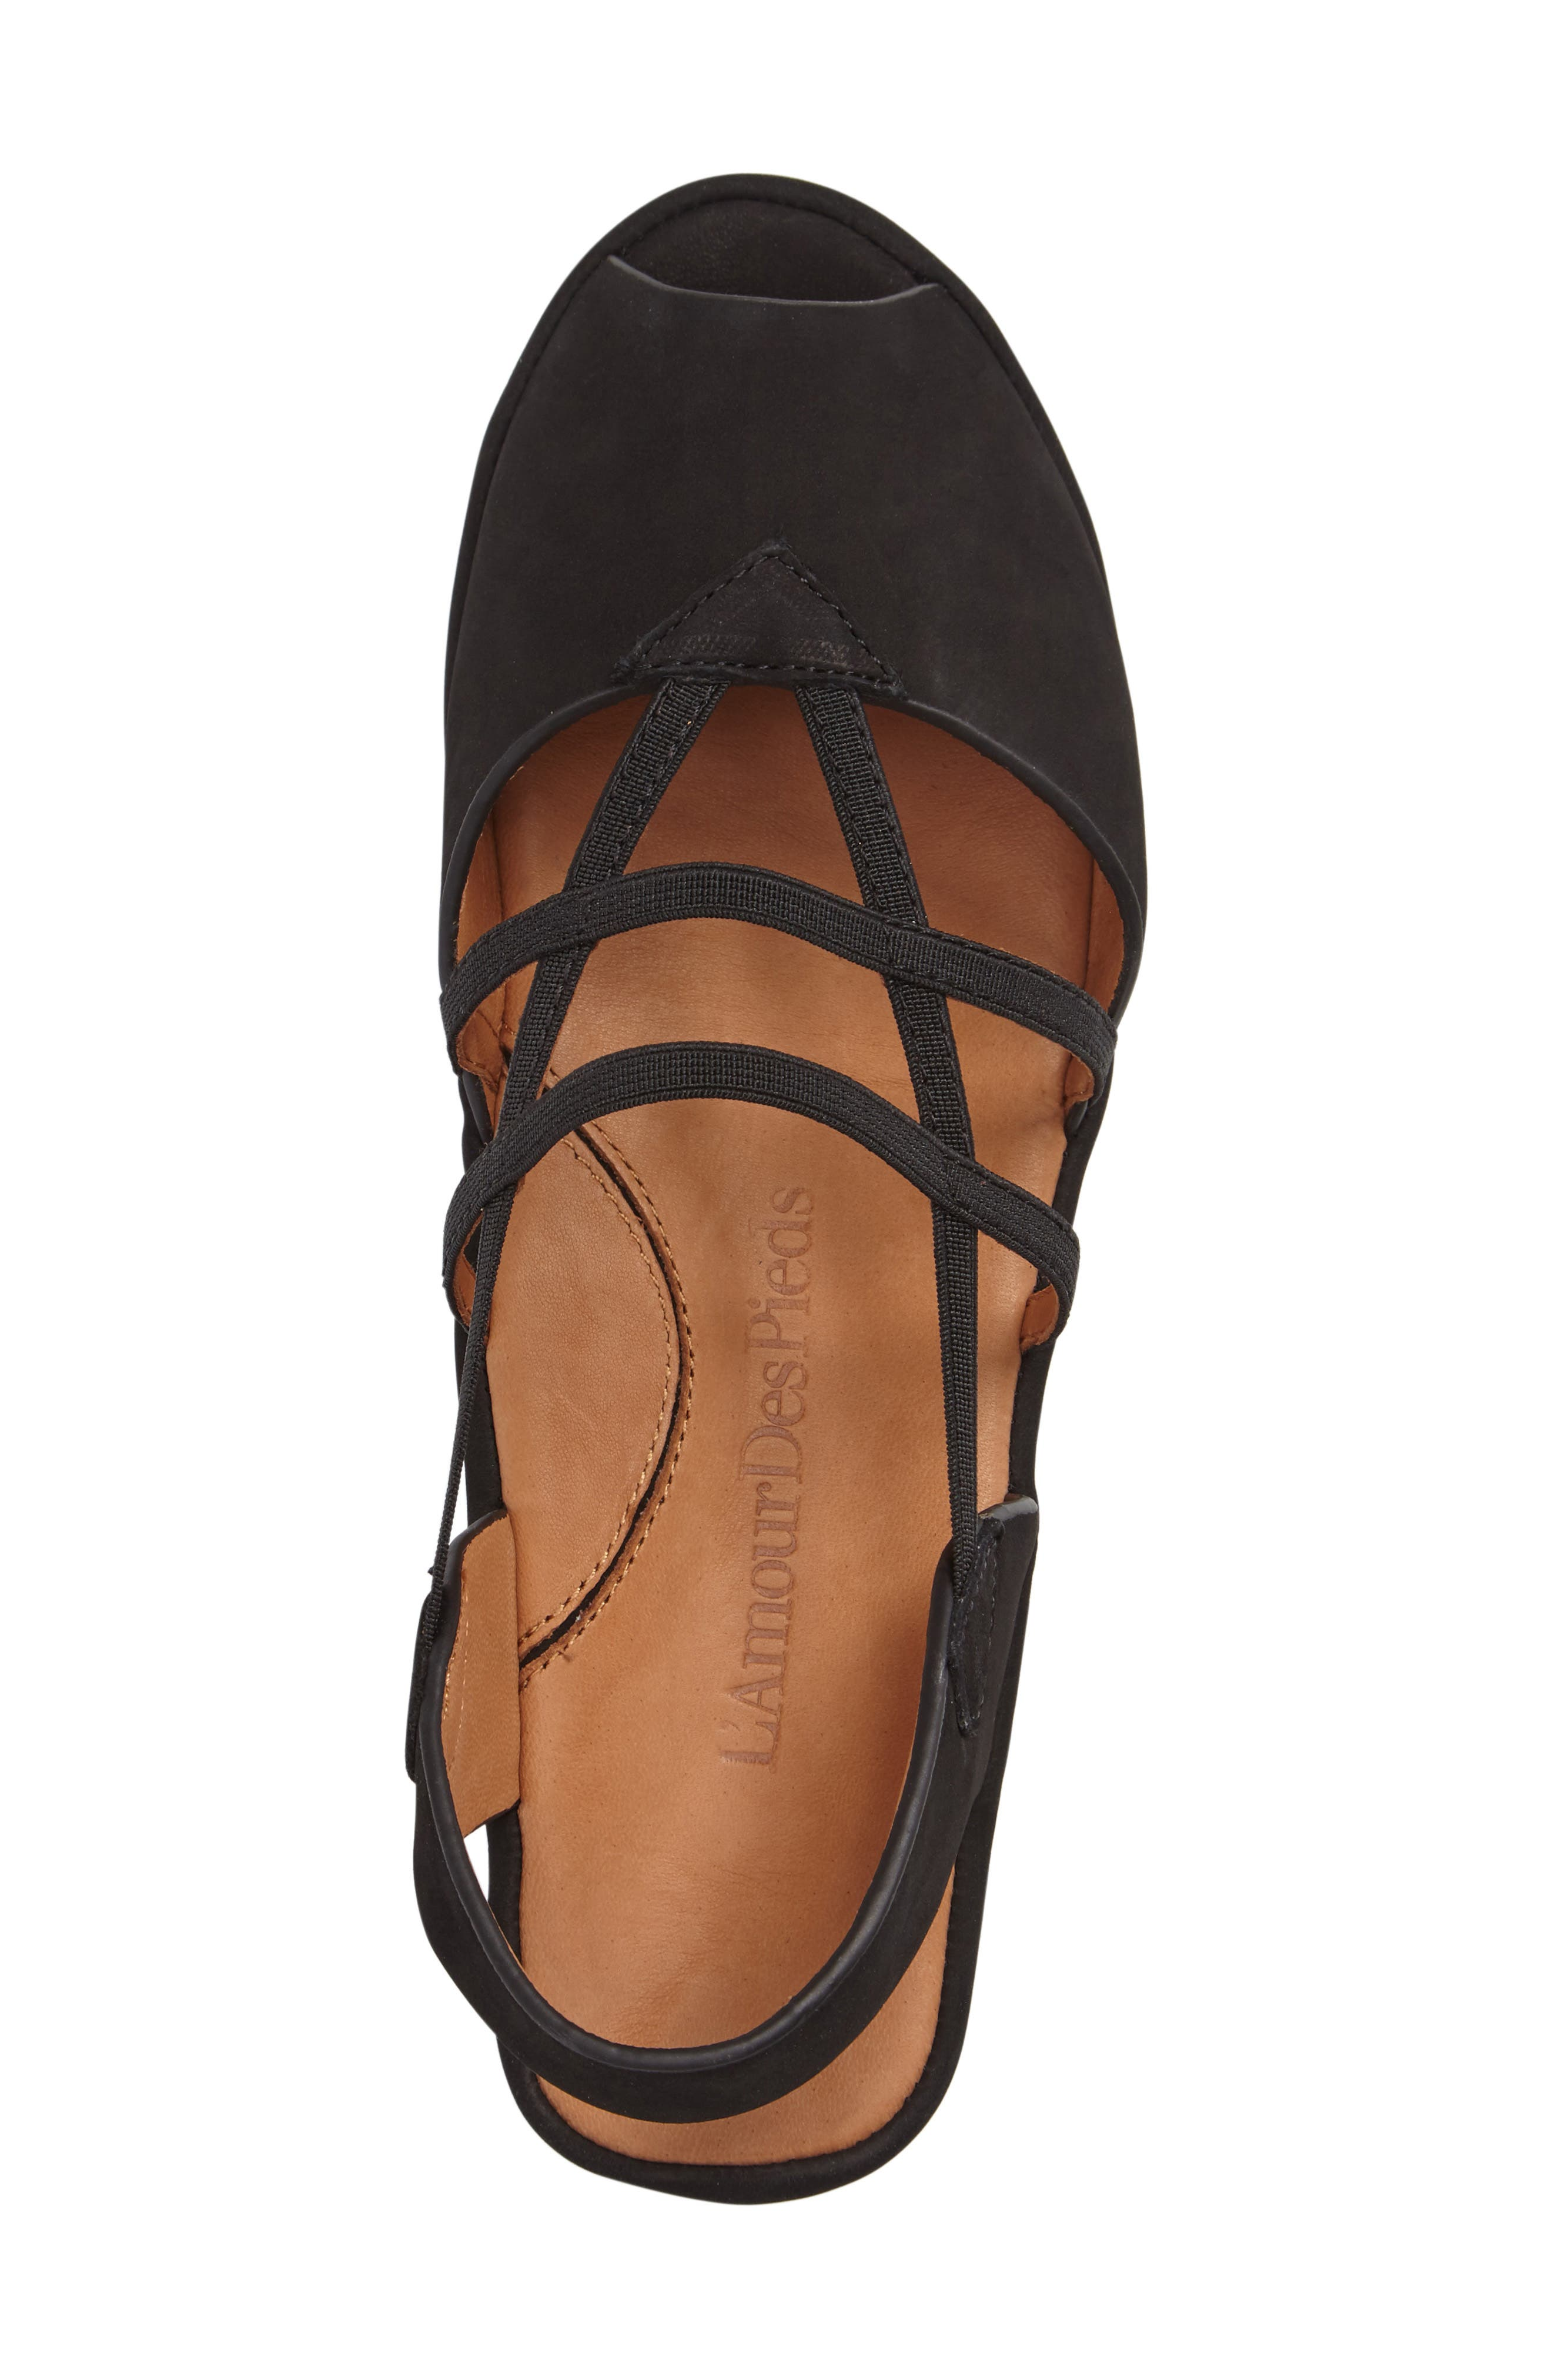 L'AMOUR DES PIEDS, Adelais Platform Wedge Sandal, Alternate thumbnail 3, color, BLACK NUBUCK LEATHER